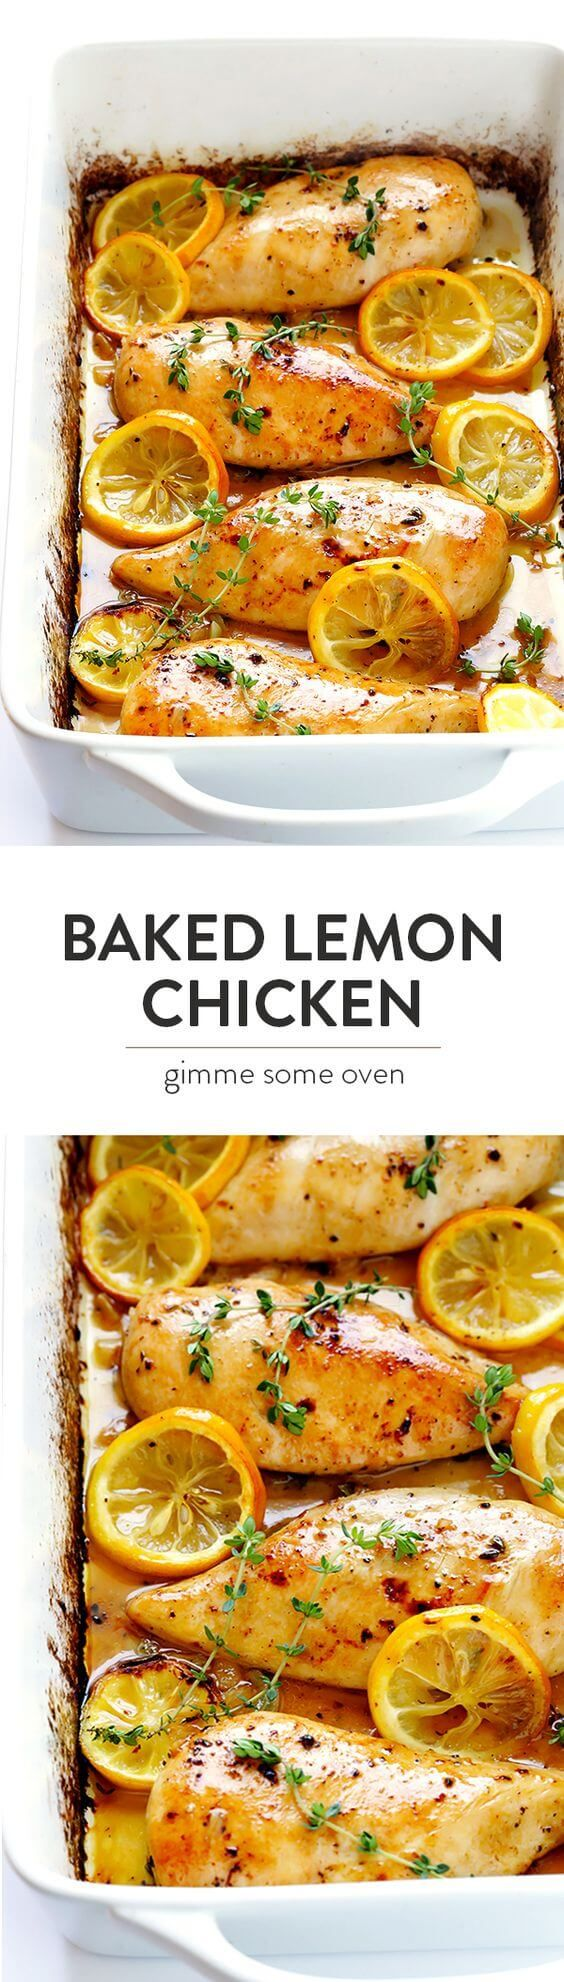 awesome Baked Lemon Chicken